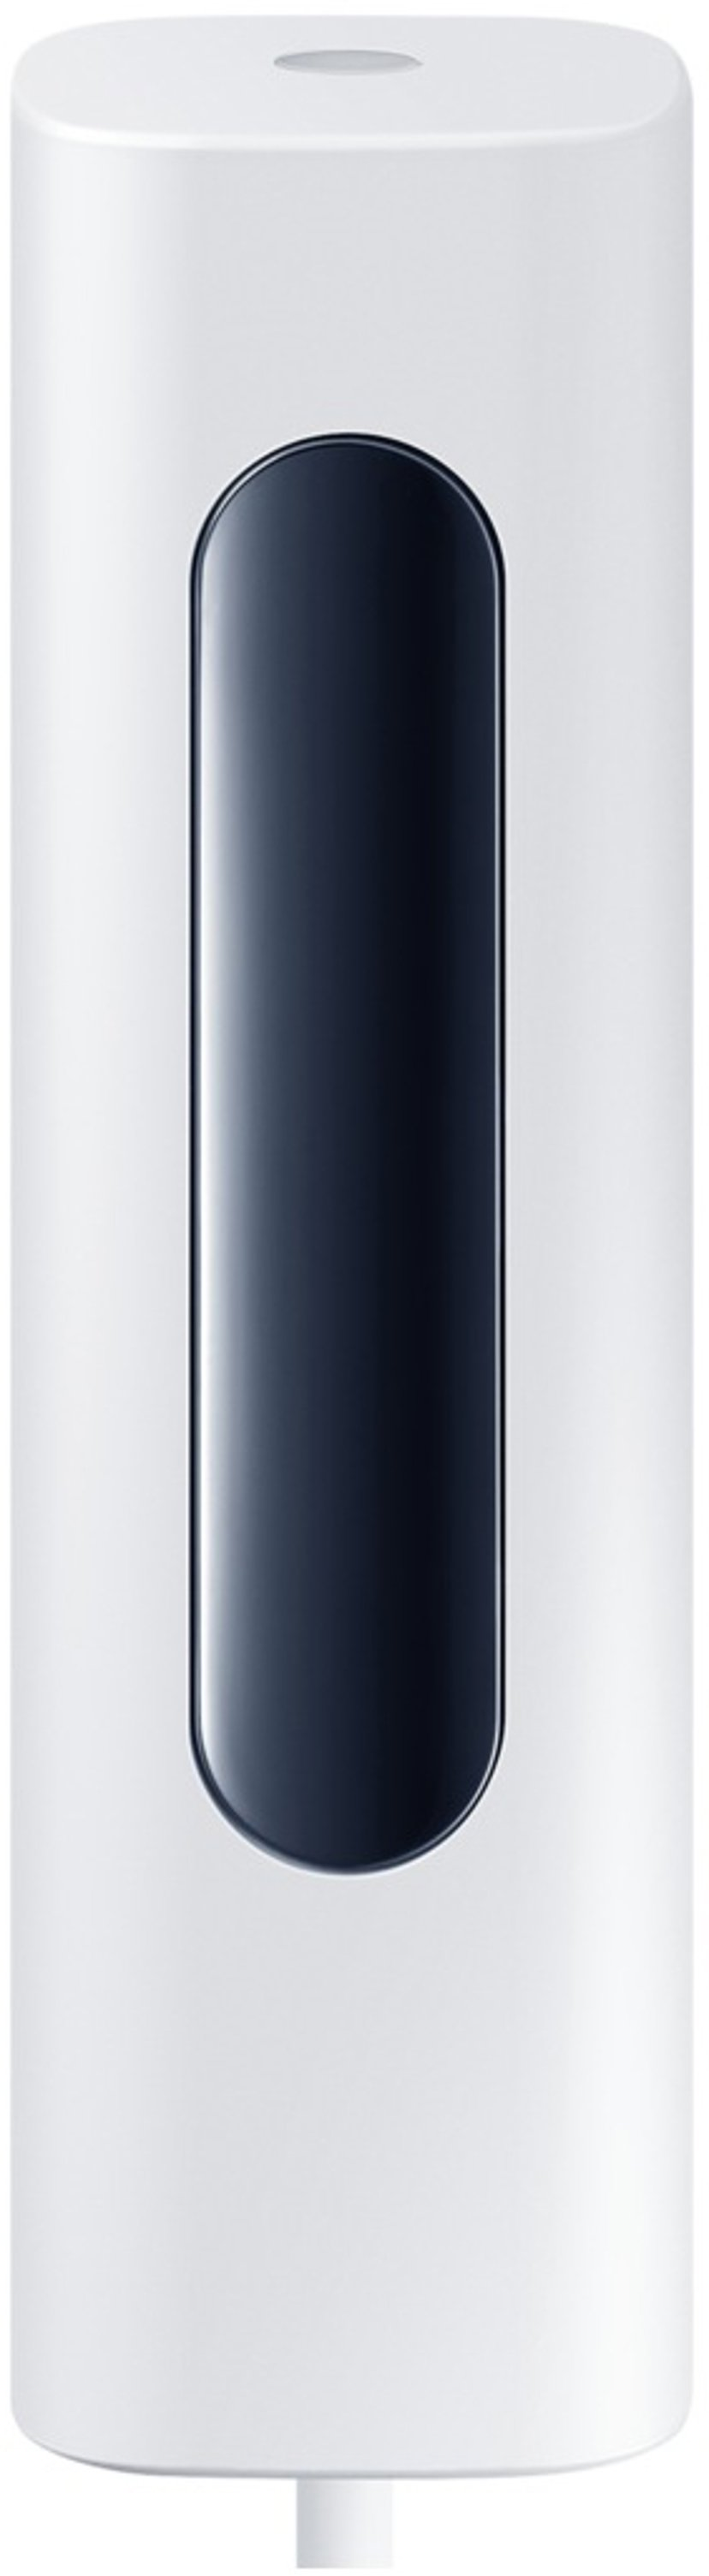 Samsung SmartThings Vision